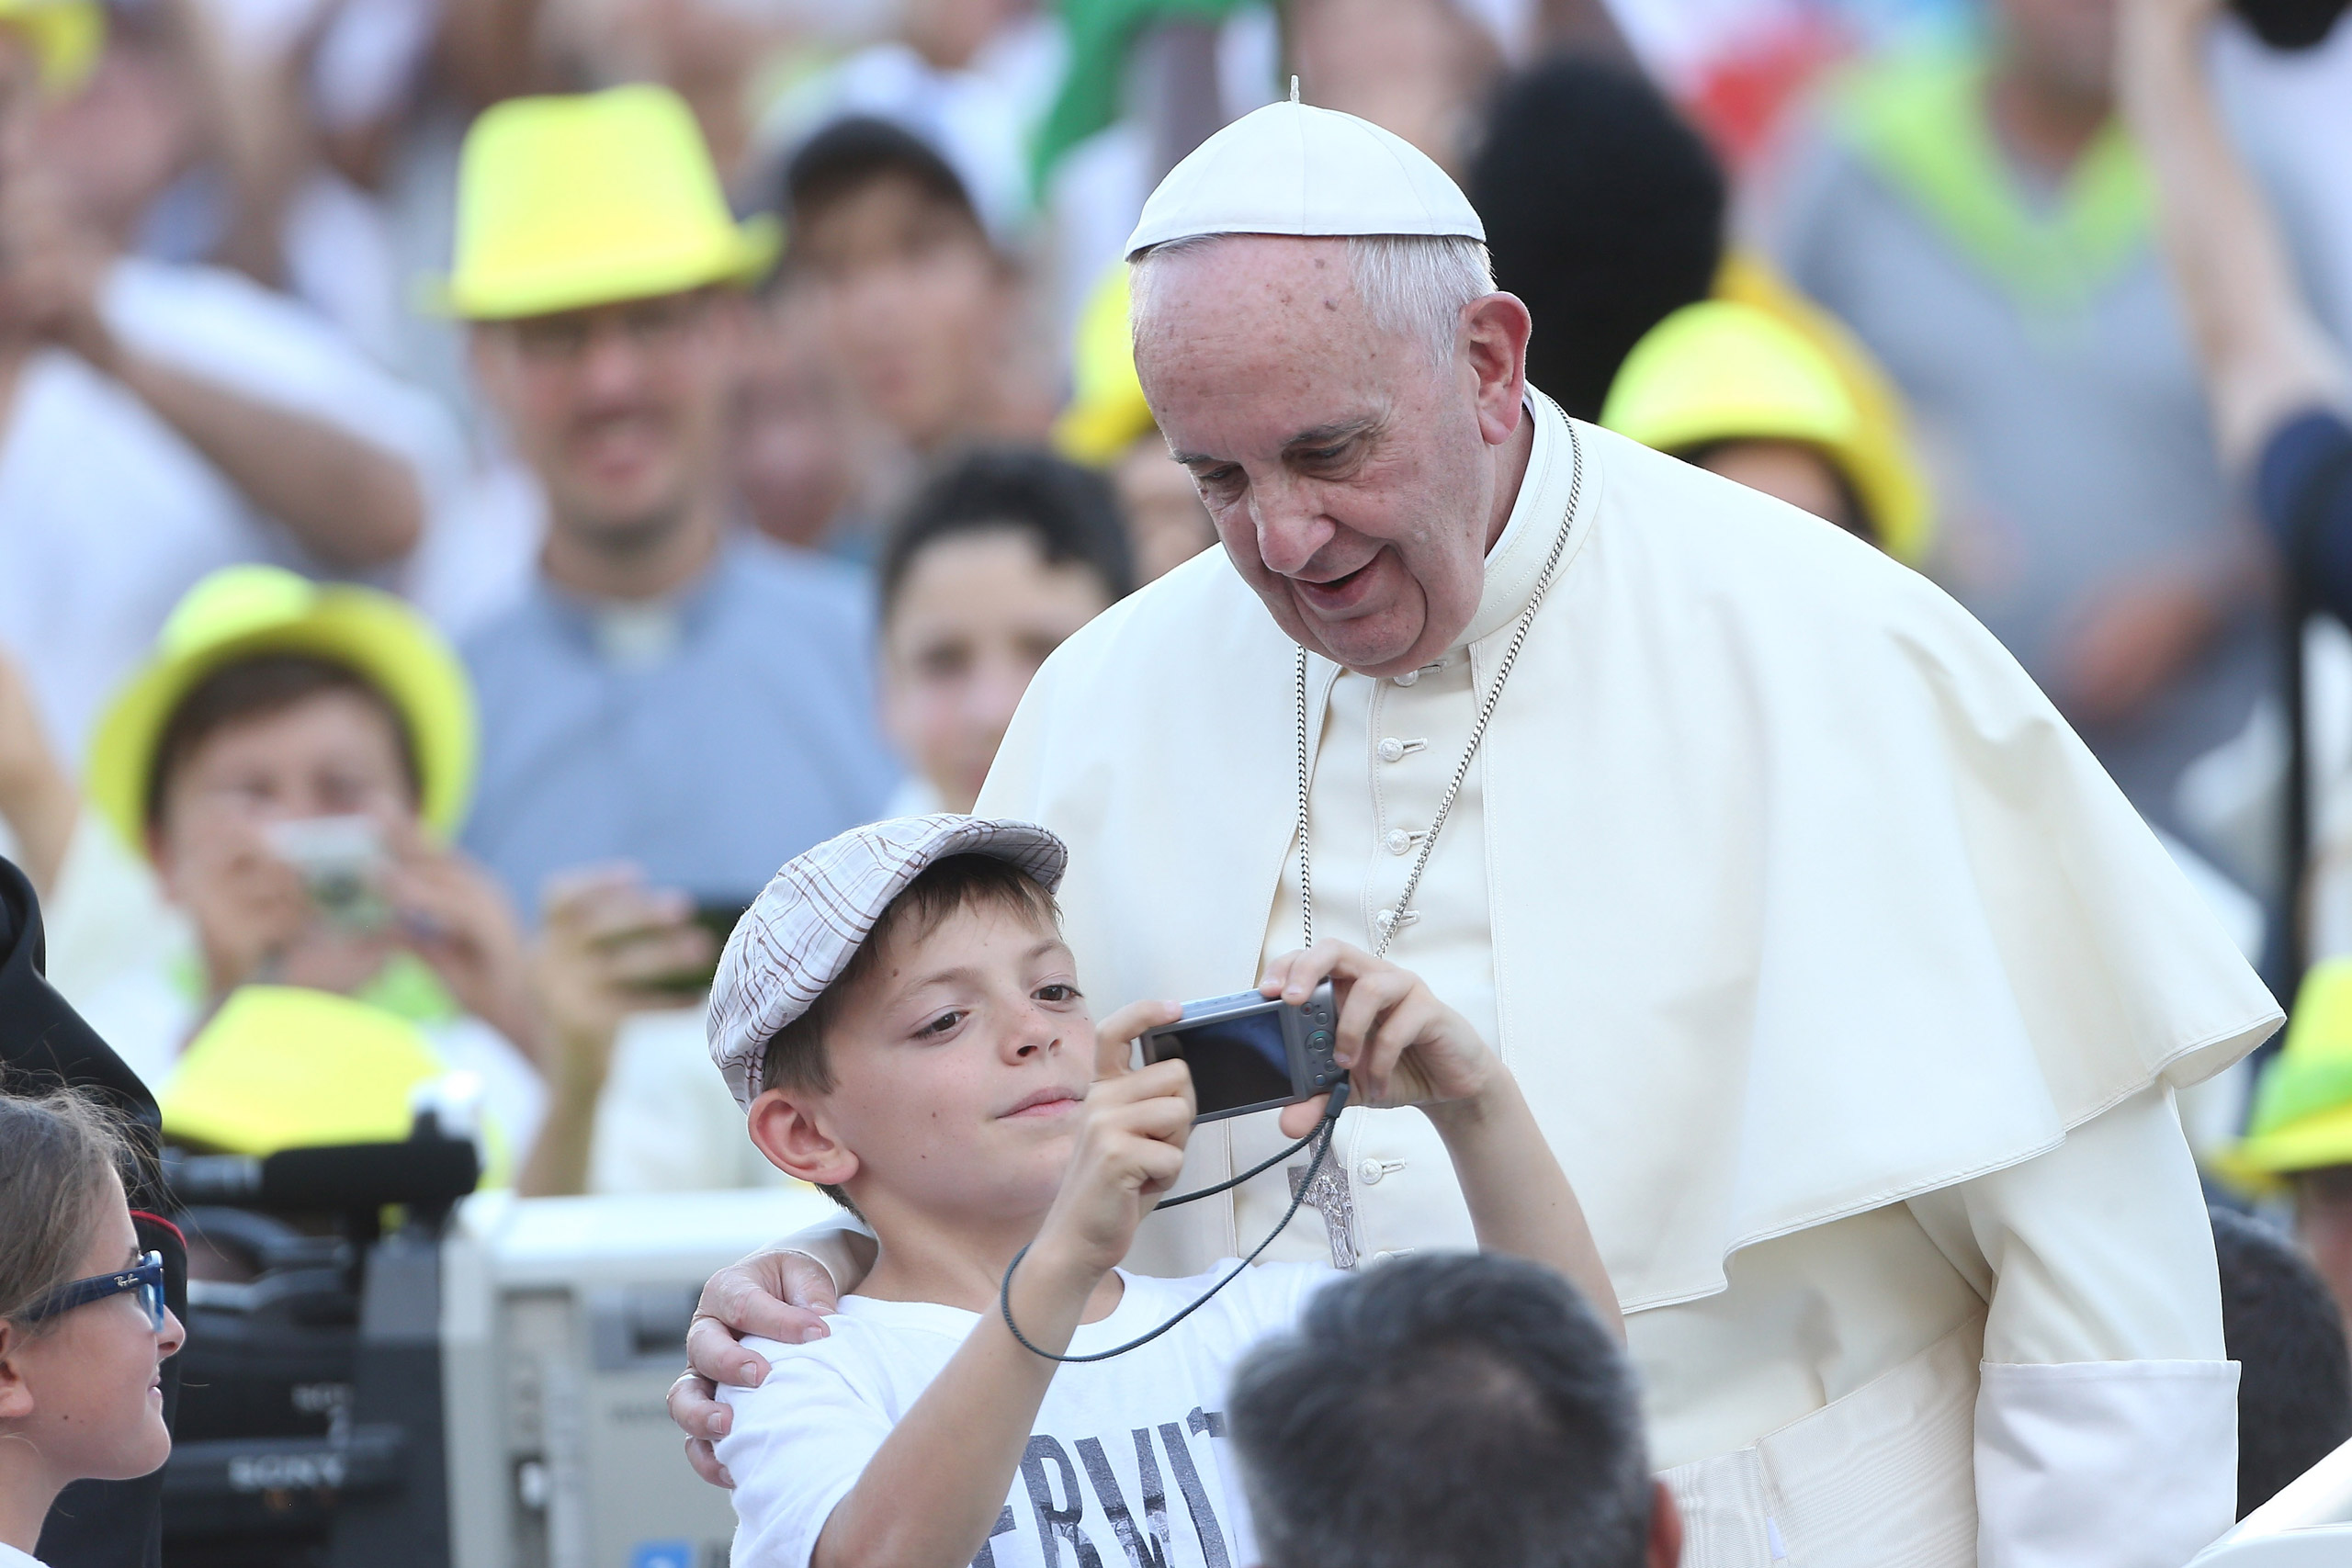 Pope Francis poses for a selfie as he arrives in St. Peter's Square for an audience in Vatican City on Aug. 4, 2015.